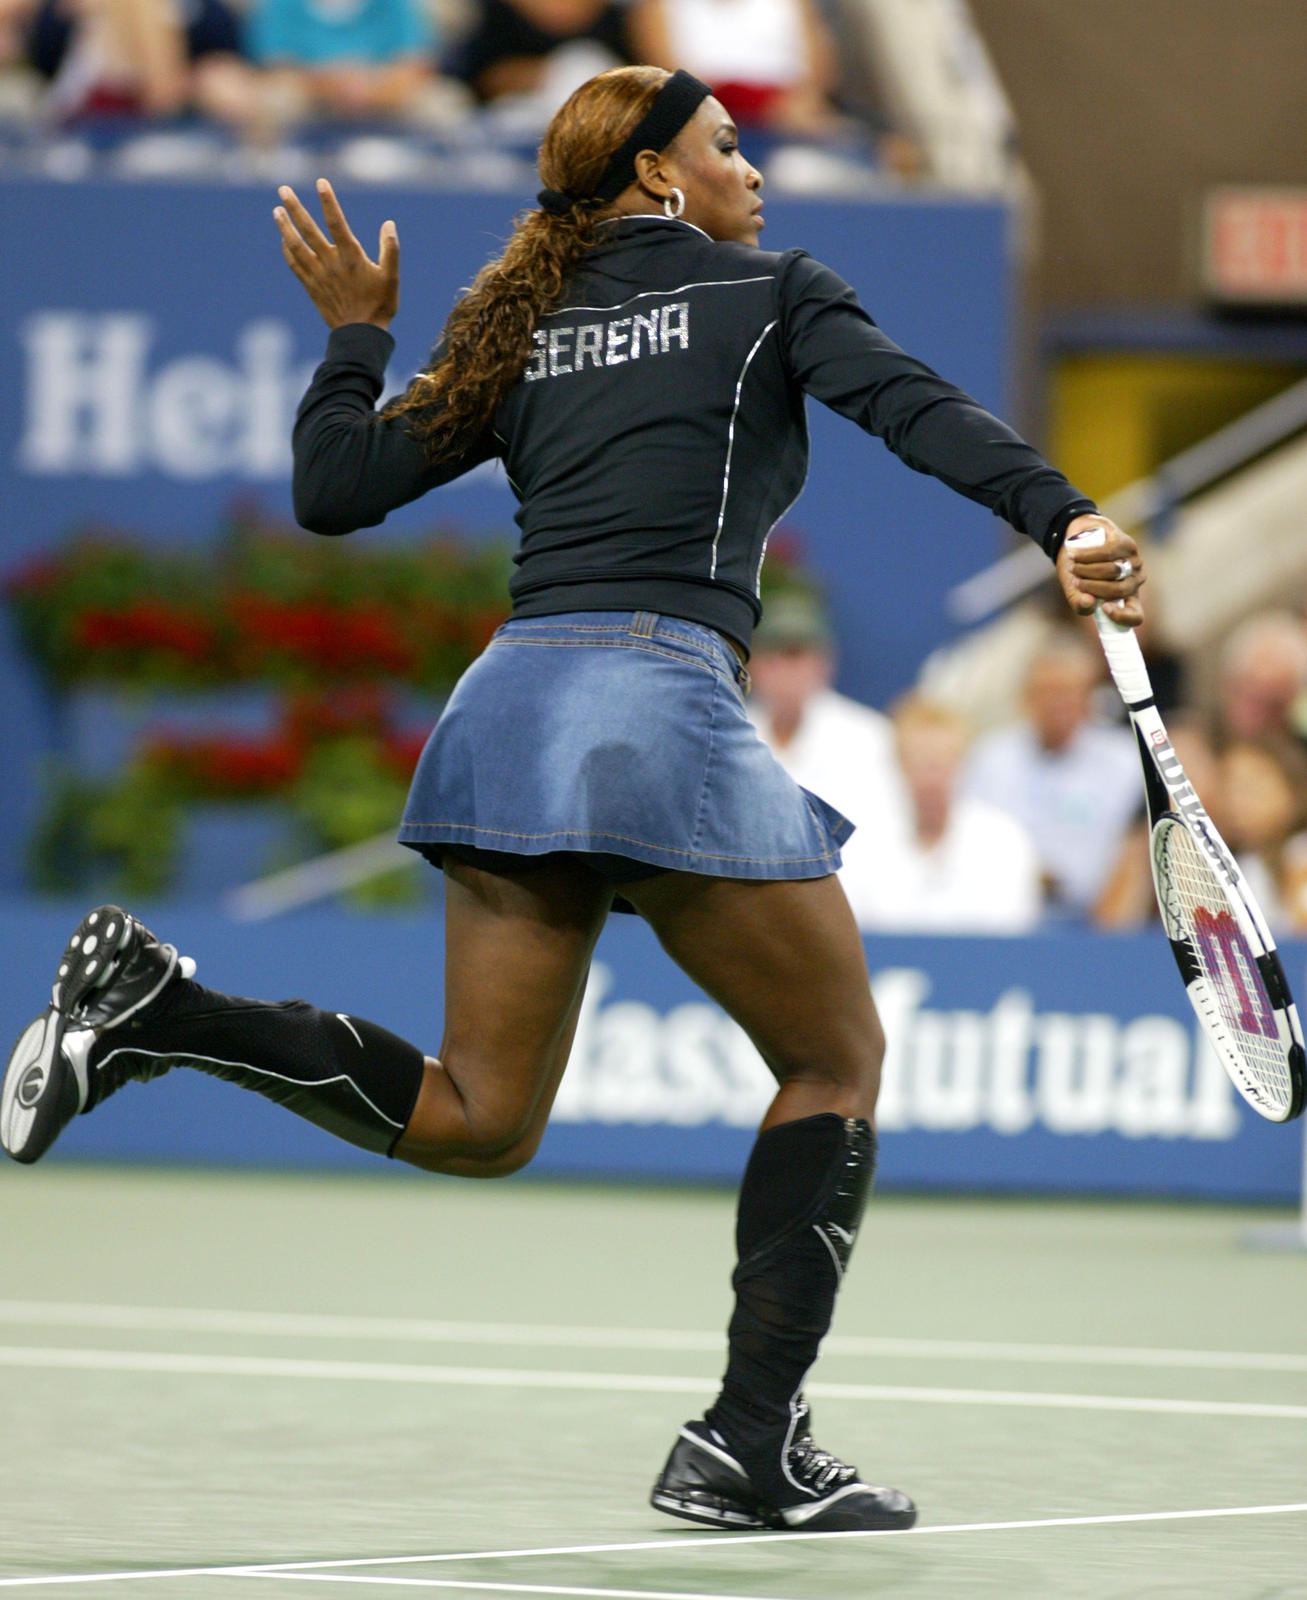 Serena Williams_1